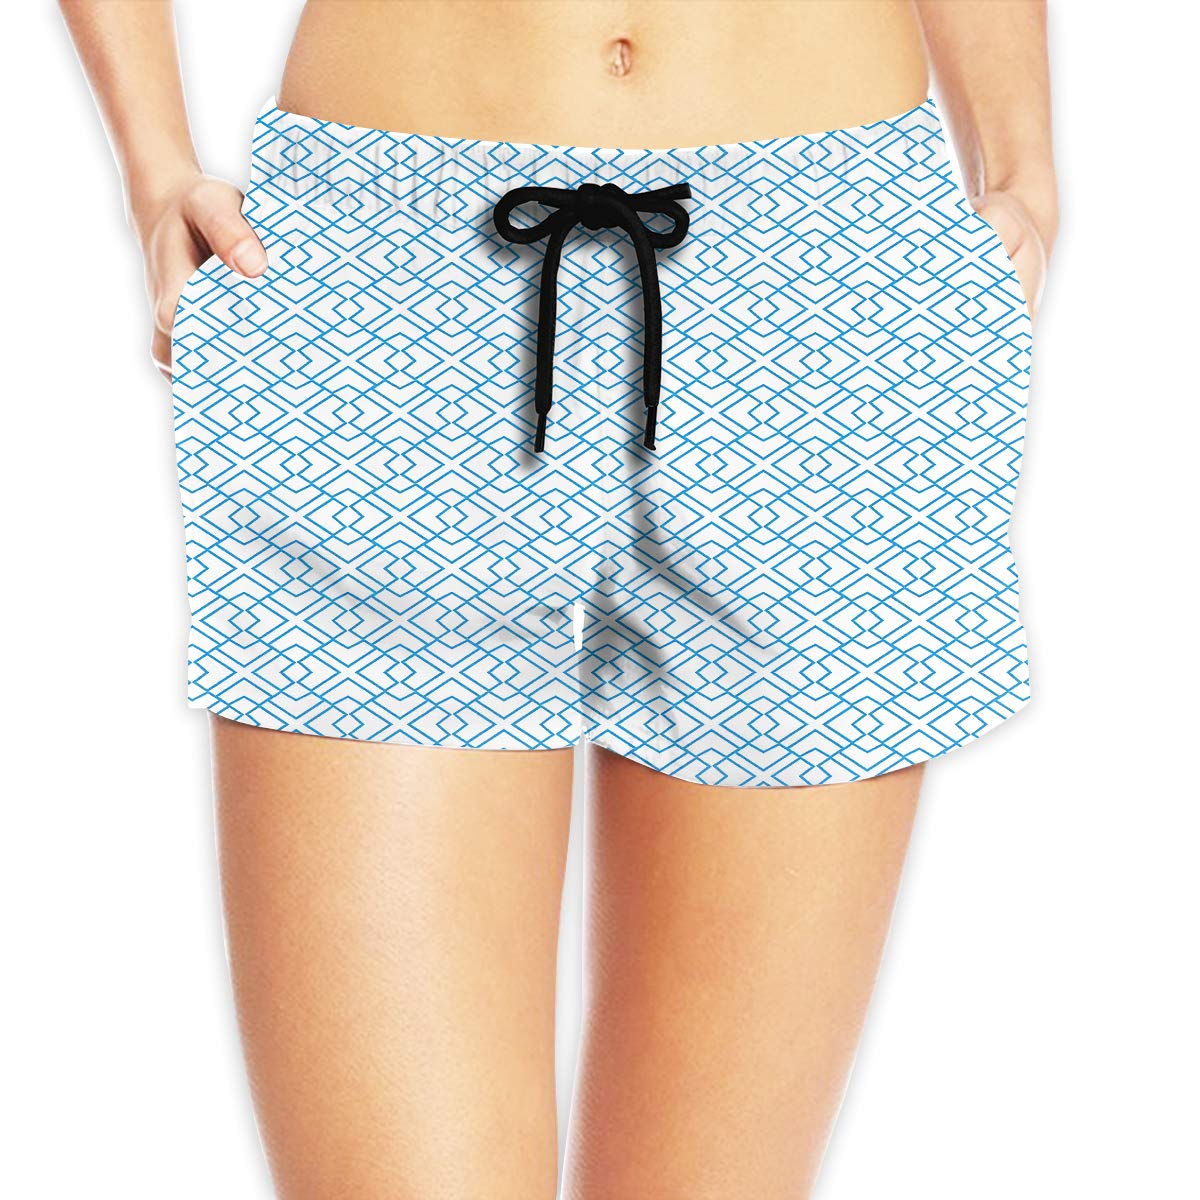 Womens Comfortable Hawaii Beach Camper Particular Beach Shorts Swim Trunks Board Shorts